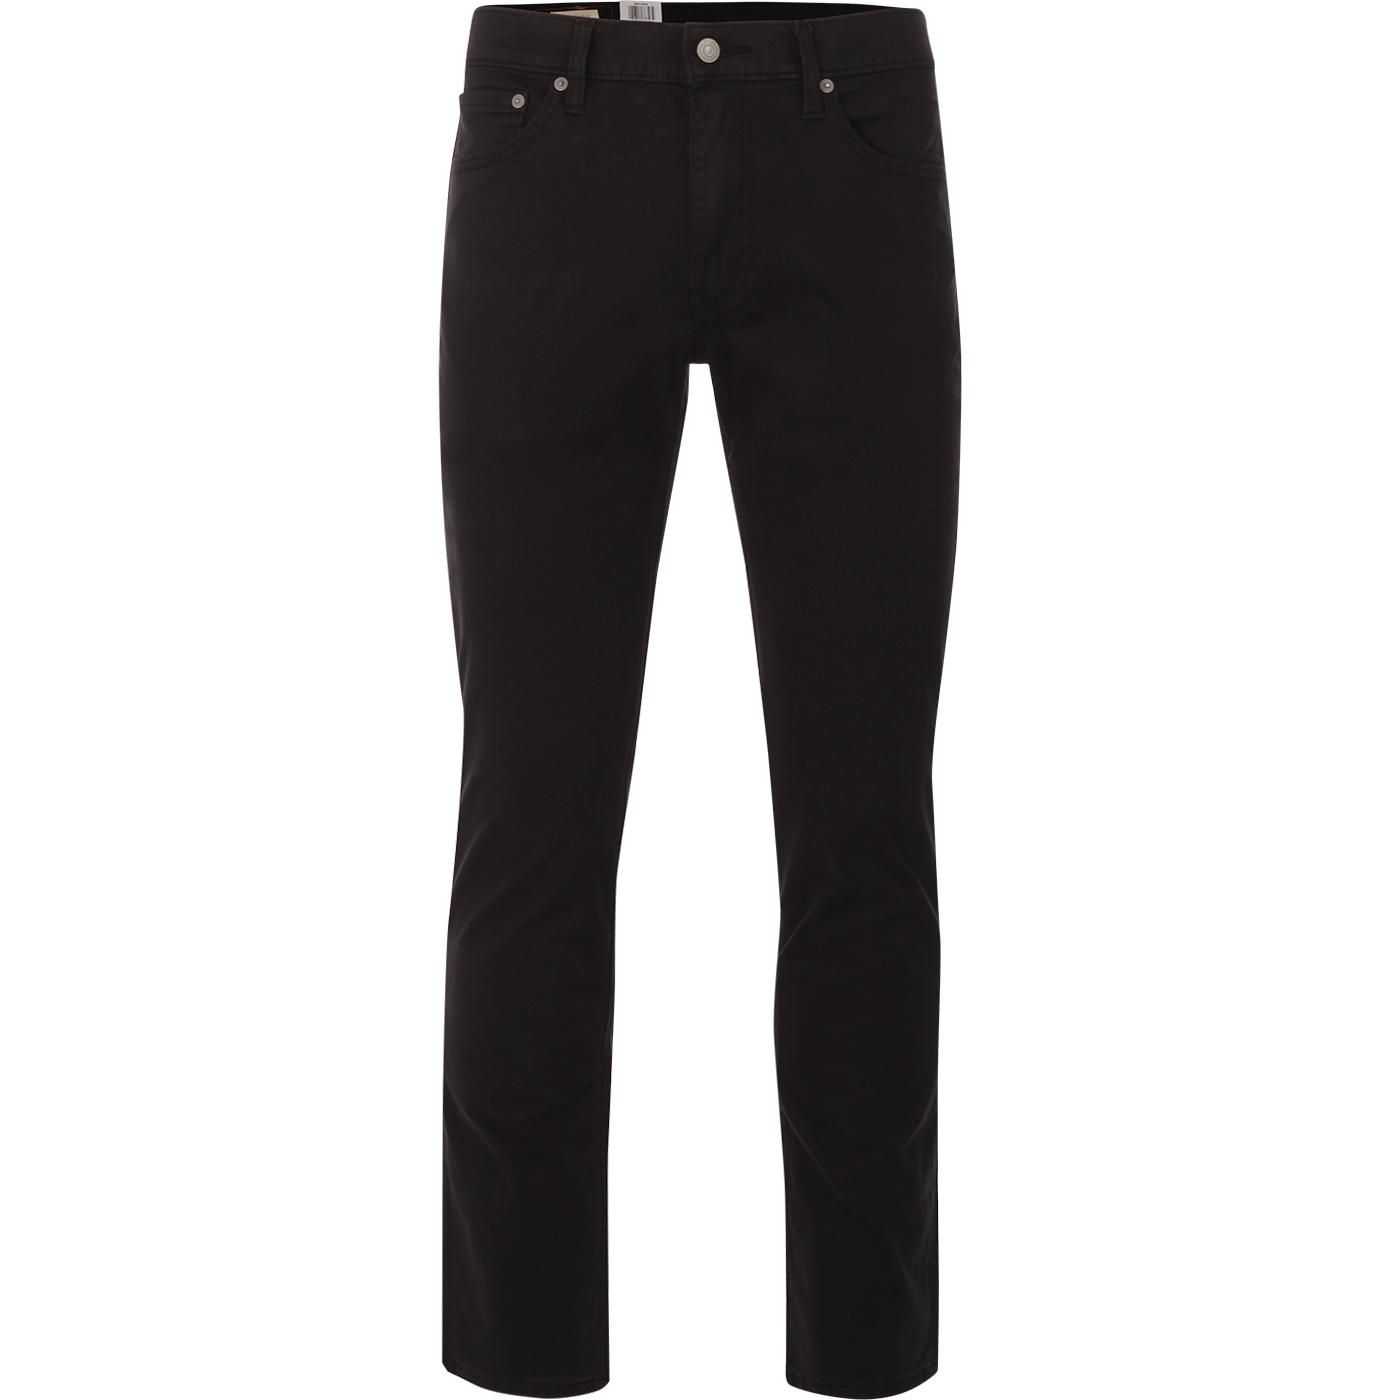 LEVI'S 511 Slim Fit Sueded Sateen Chinos (Caviar)